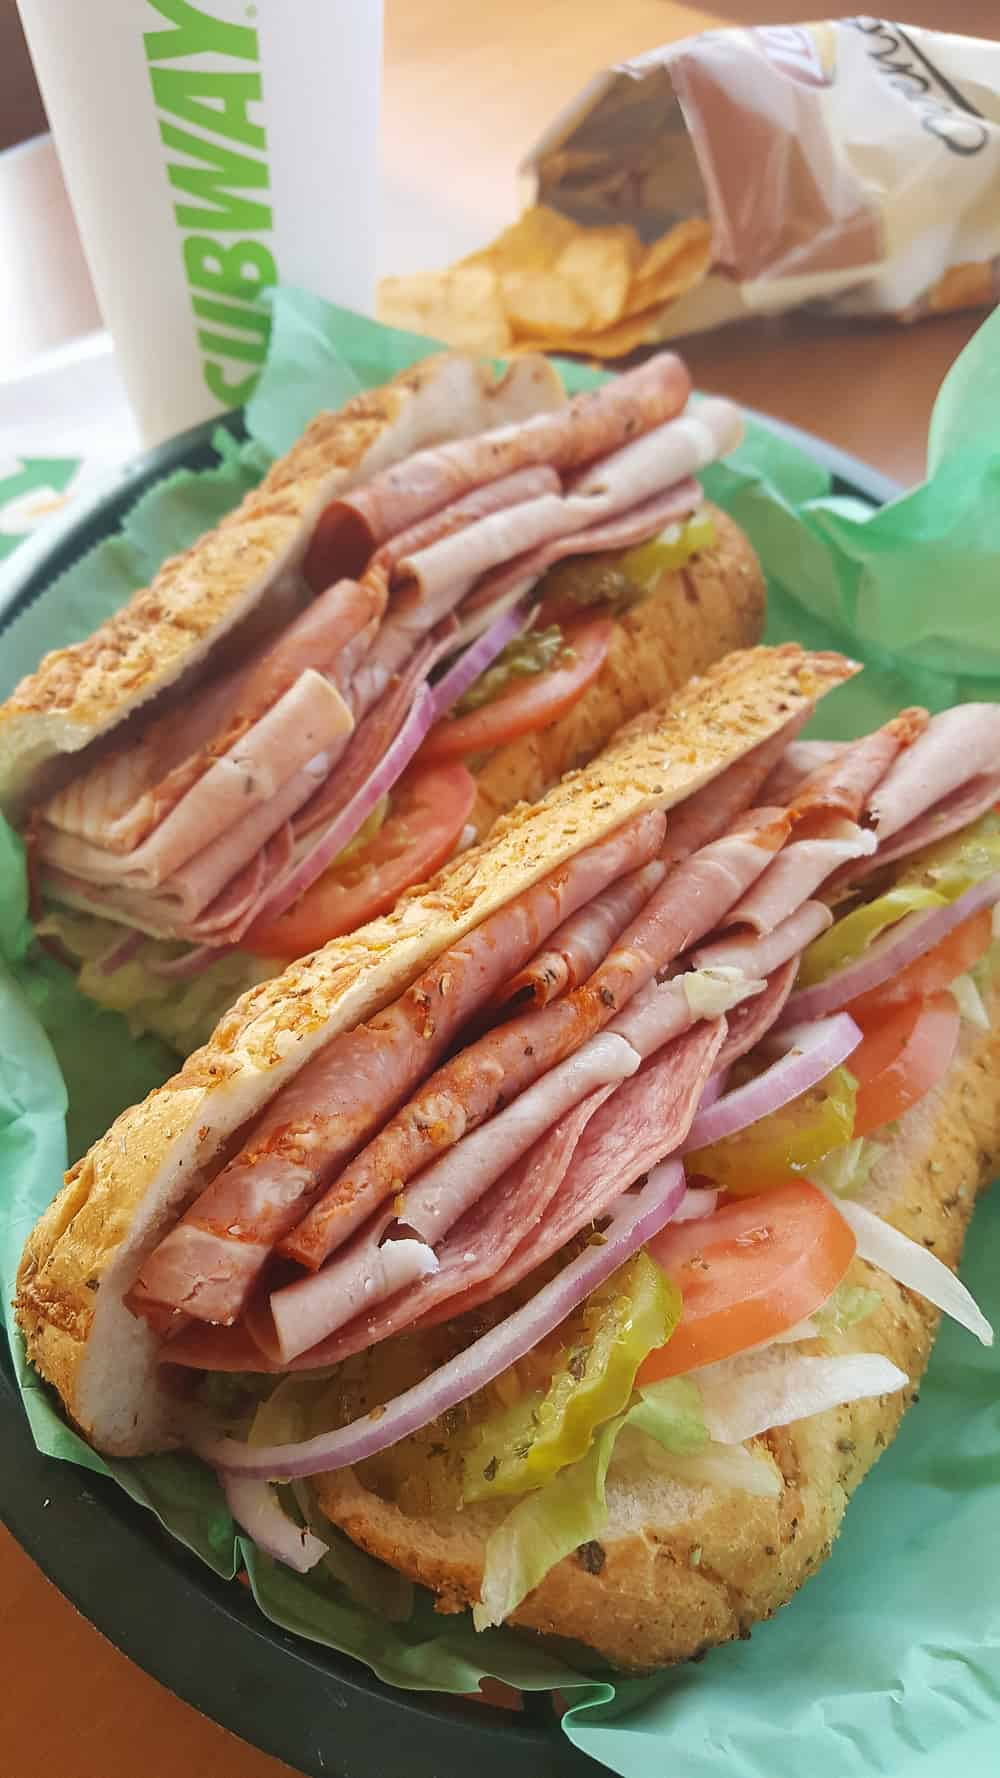 SUBWAY Italian Hero is a flavorful sub sandwich with authentic Italian flavors. Fresh bread is topped with Capicola, Mortadella, Genoa Salami, Provolone, your preferred veggies, oregano, oil and red wine vinegar for a delicious and convenient meal.